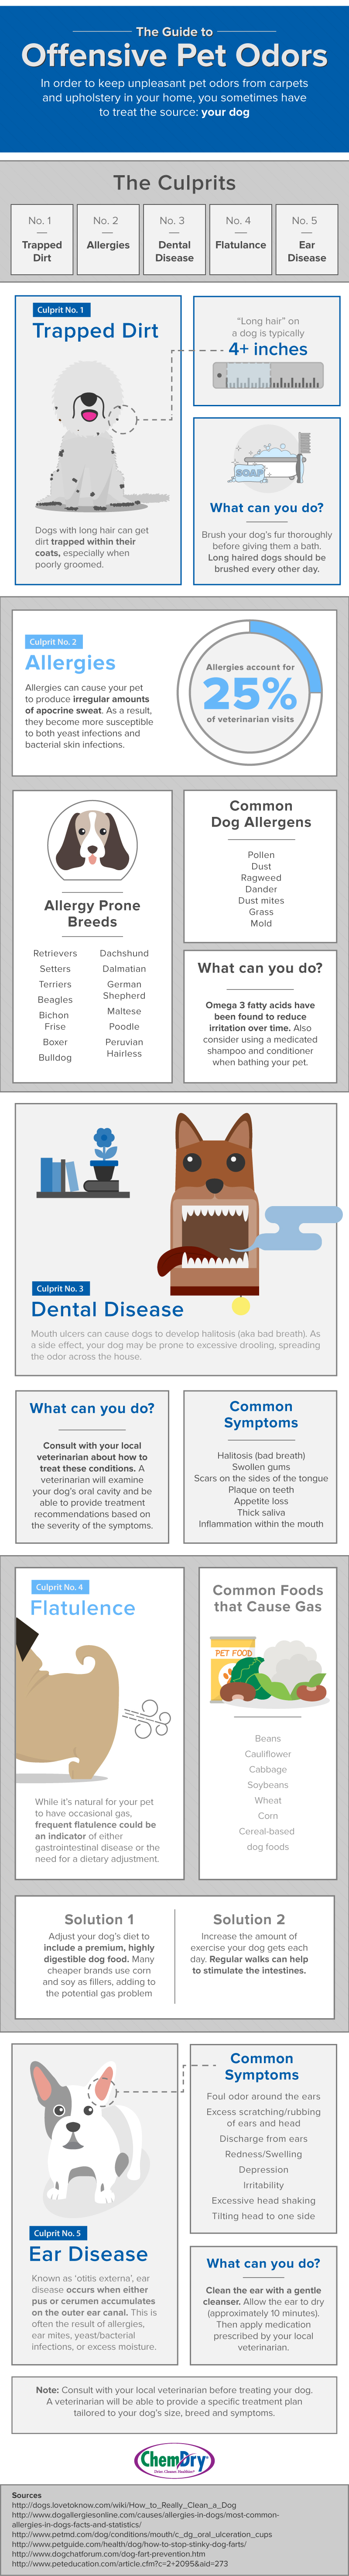 Pet Odors Infographic by Chem-Dry